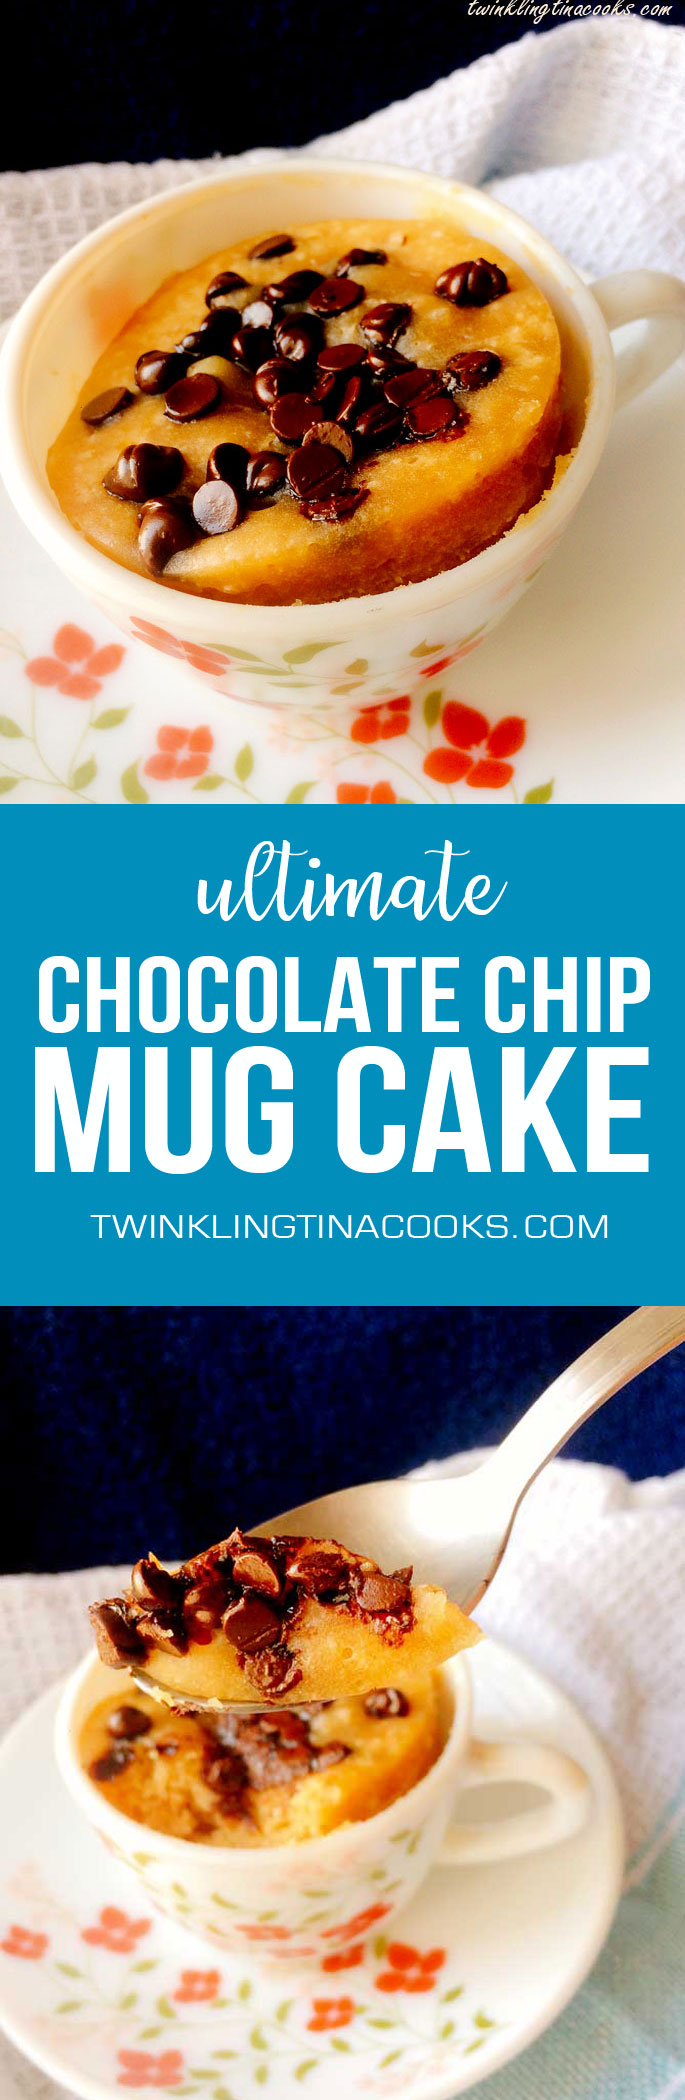 Ultimate Chocolate Chip Mug Cake – 60 second eggless mug cake in ...